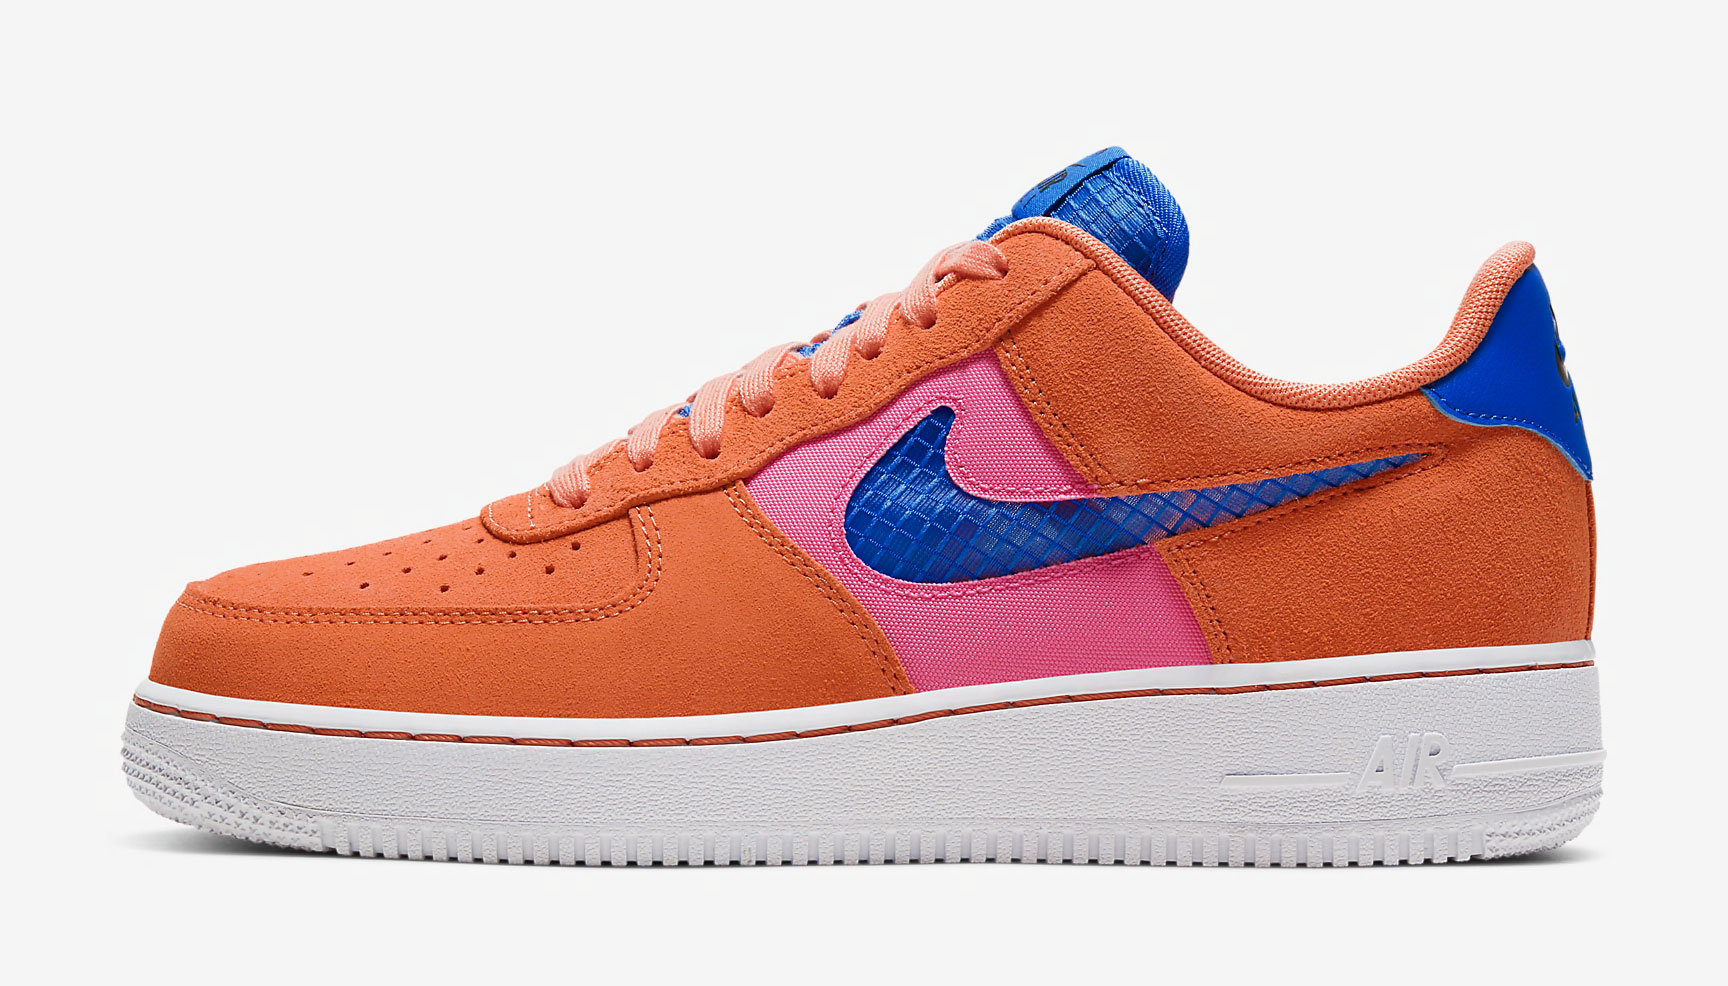 nike-air-force-1-orange-trance-pink-blue-release-date